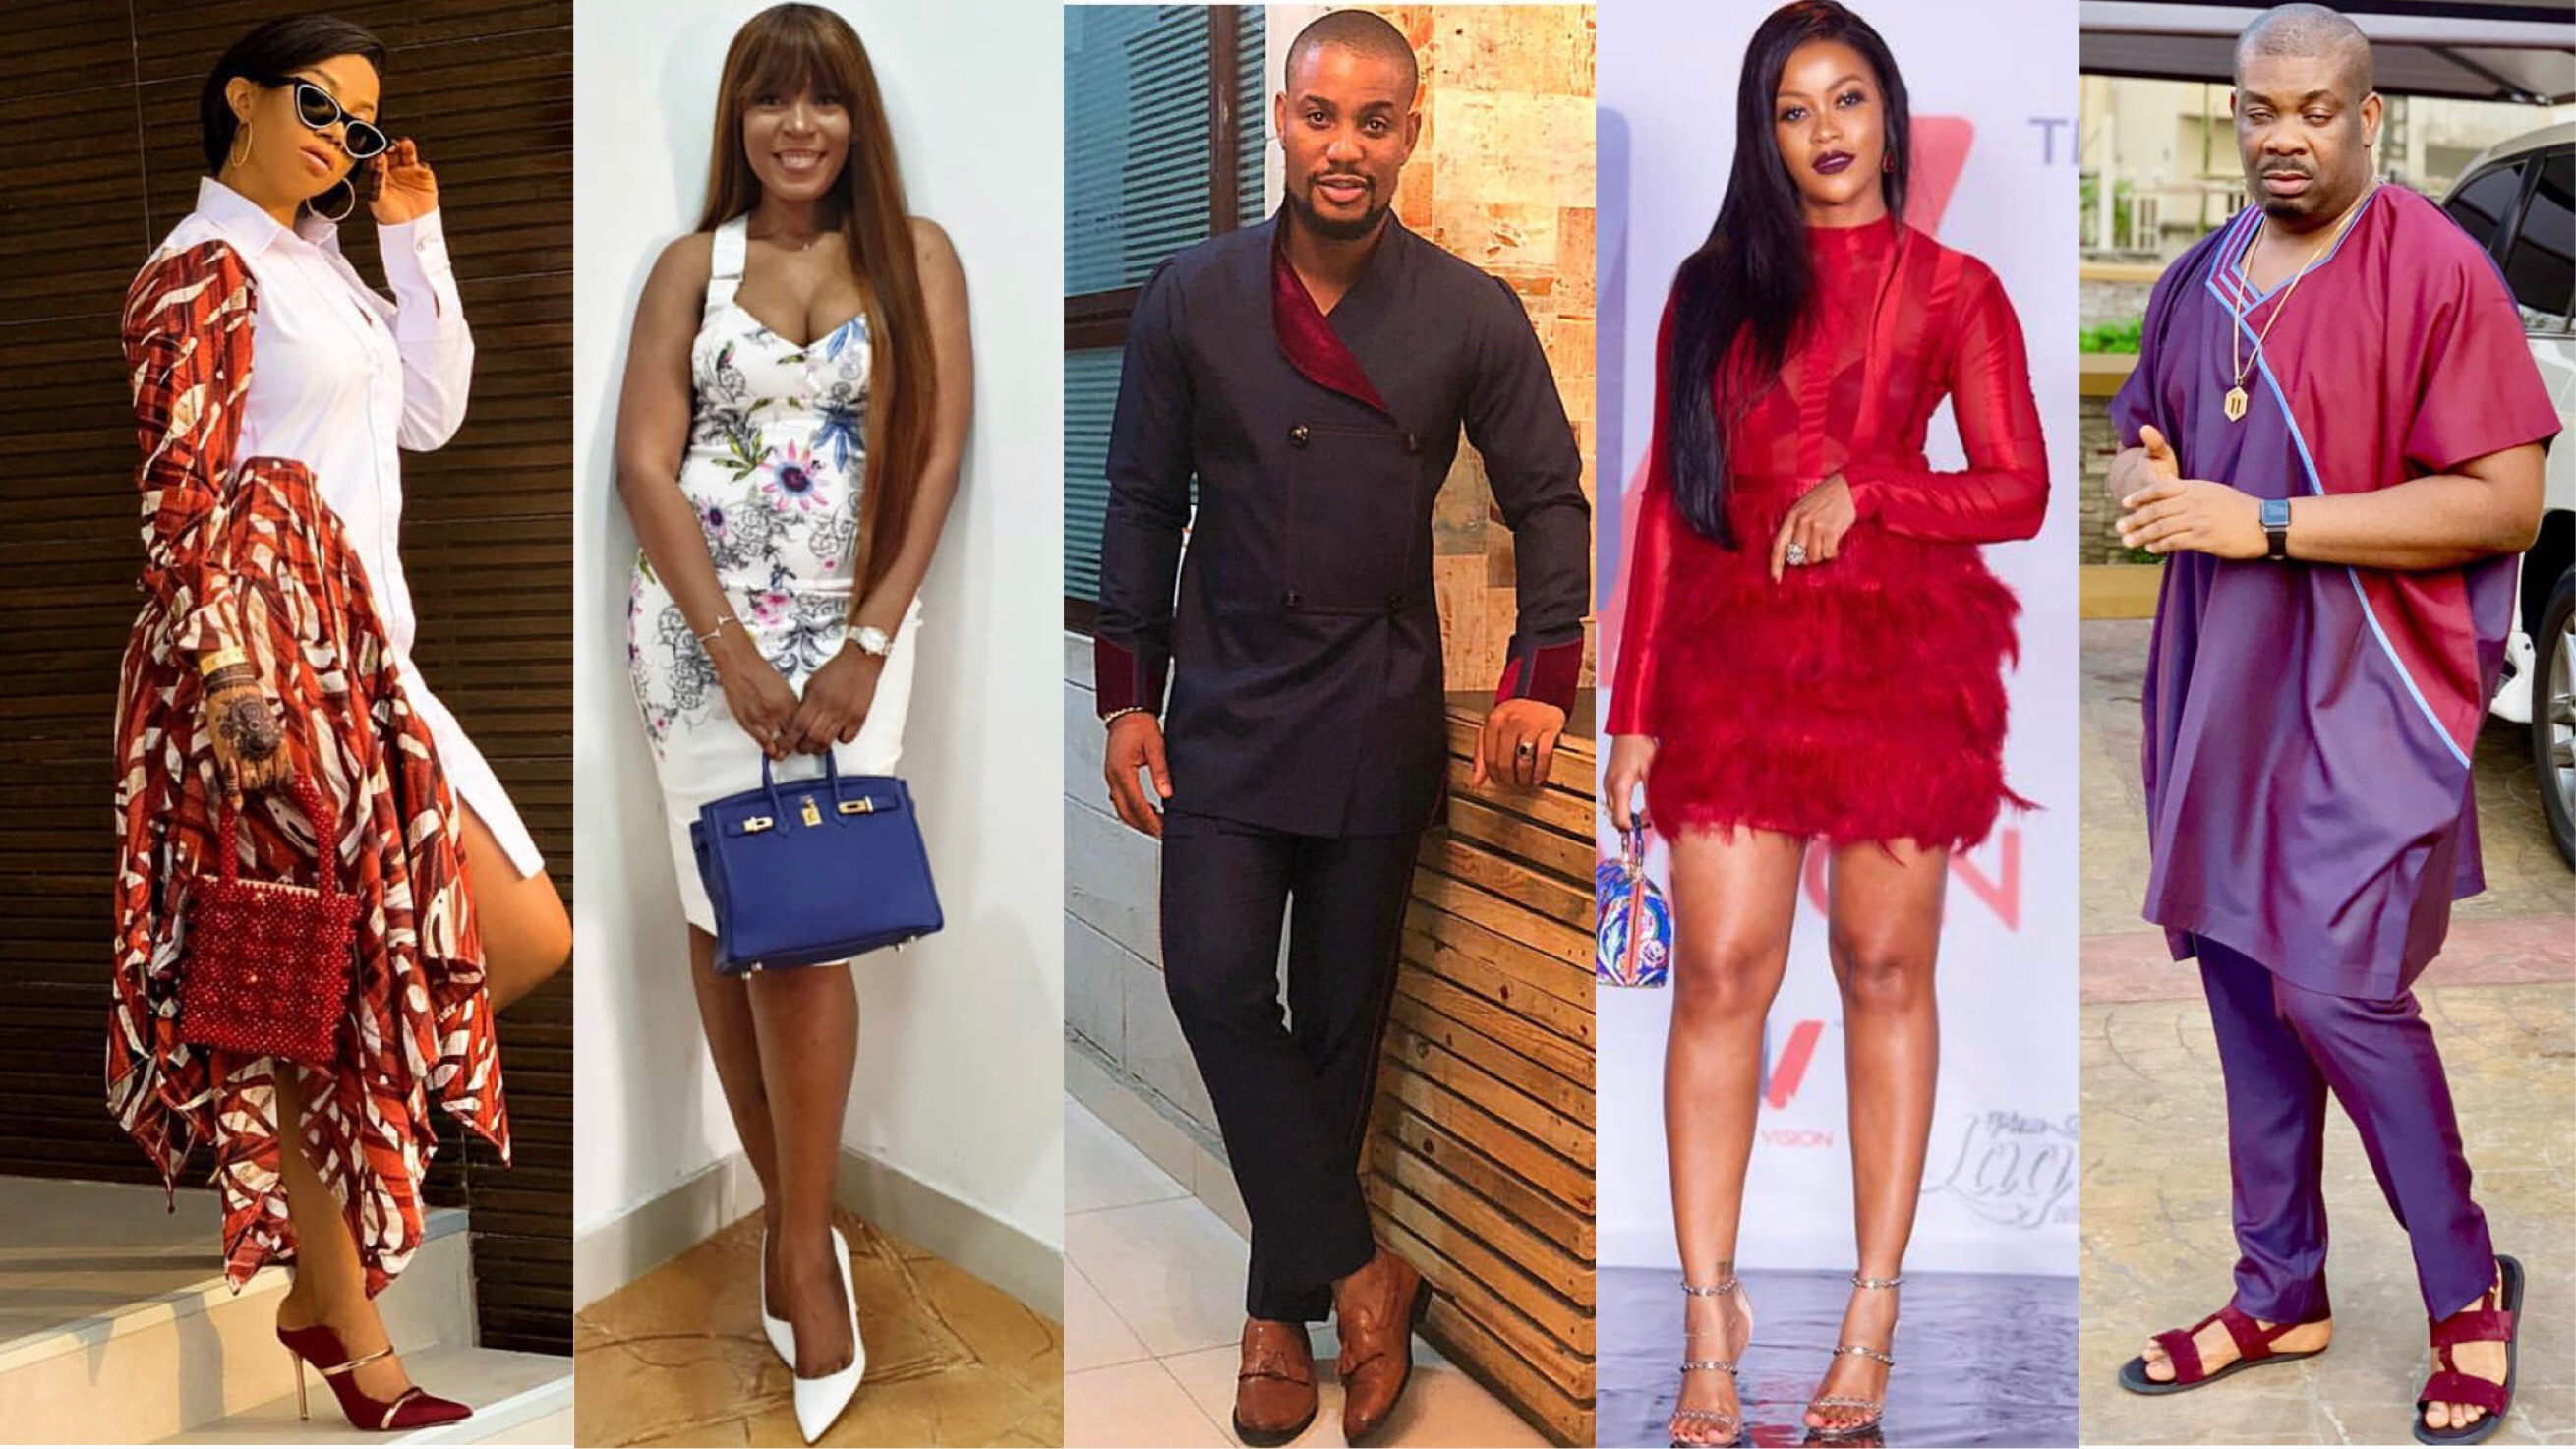 toke-makinwa-before-linda-ikeji-before-don-jazzy-alex-ekubo